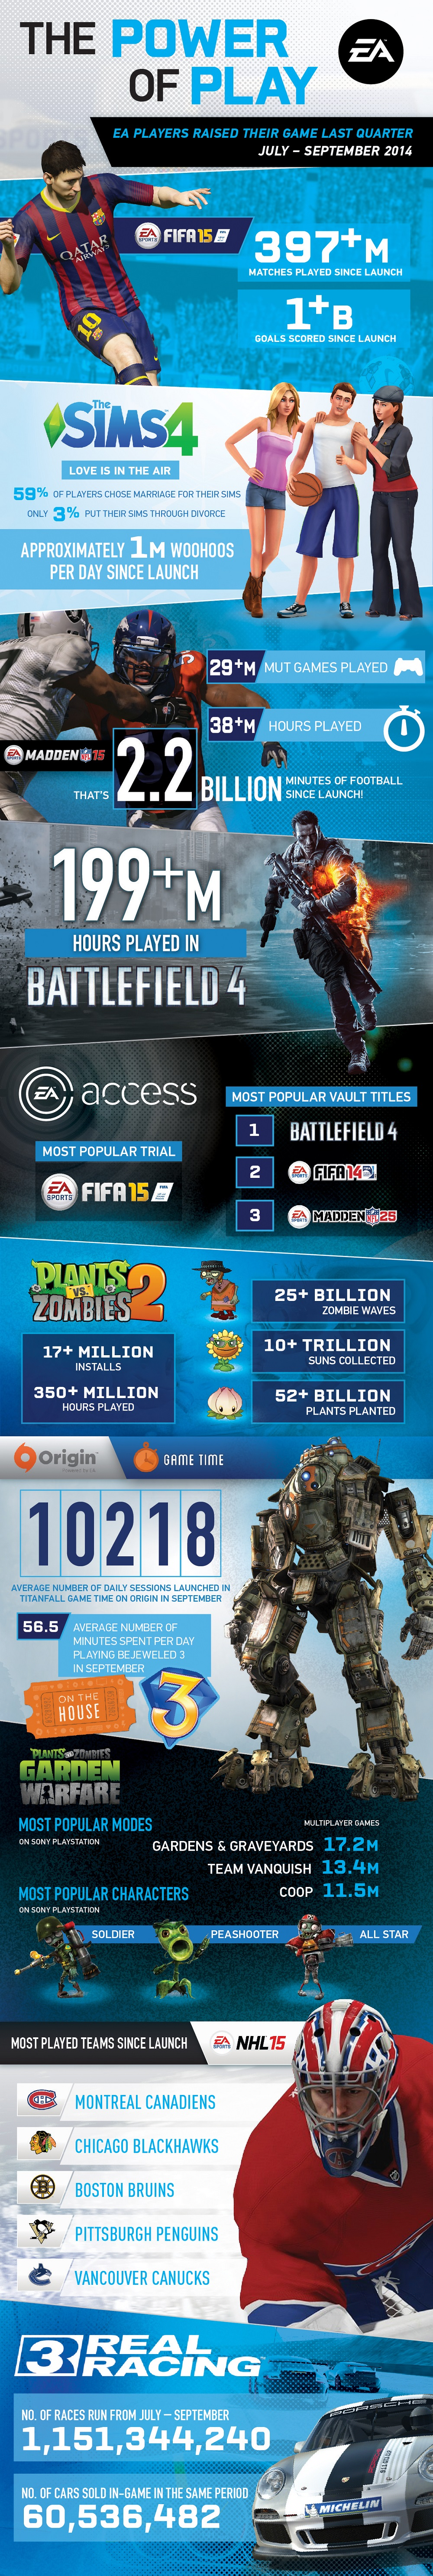 EA Q2 earnings